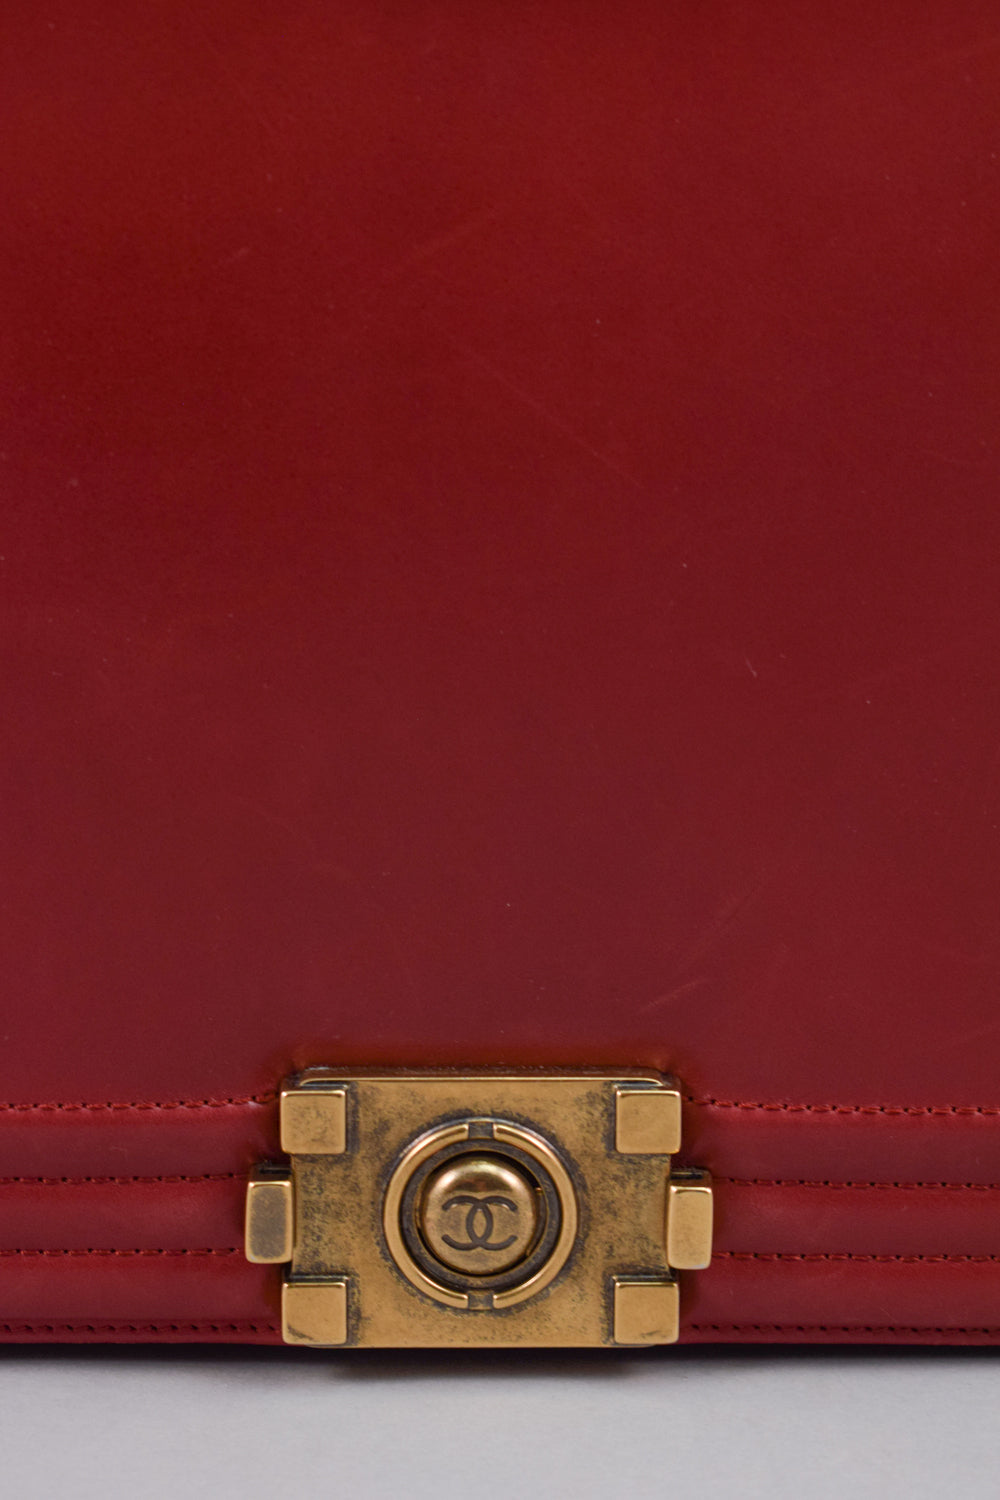 Chanel Red Smooth Calfskin Large Reverso Boy Bag